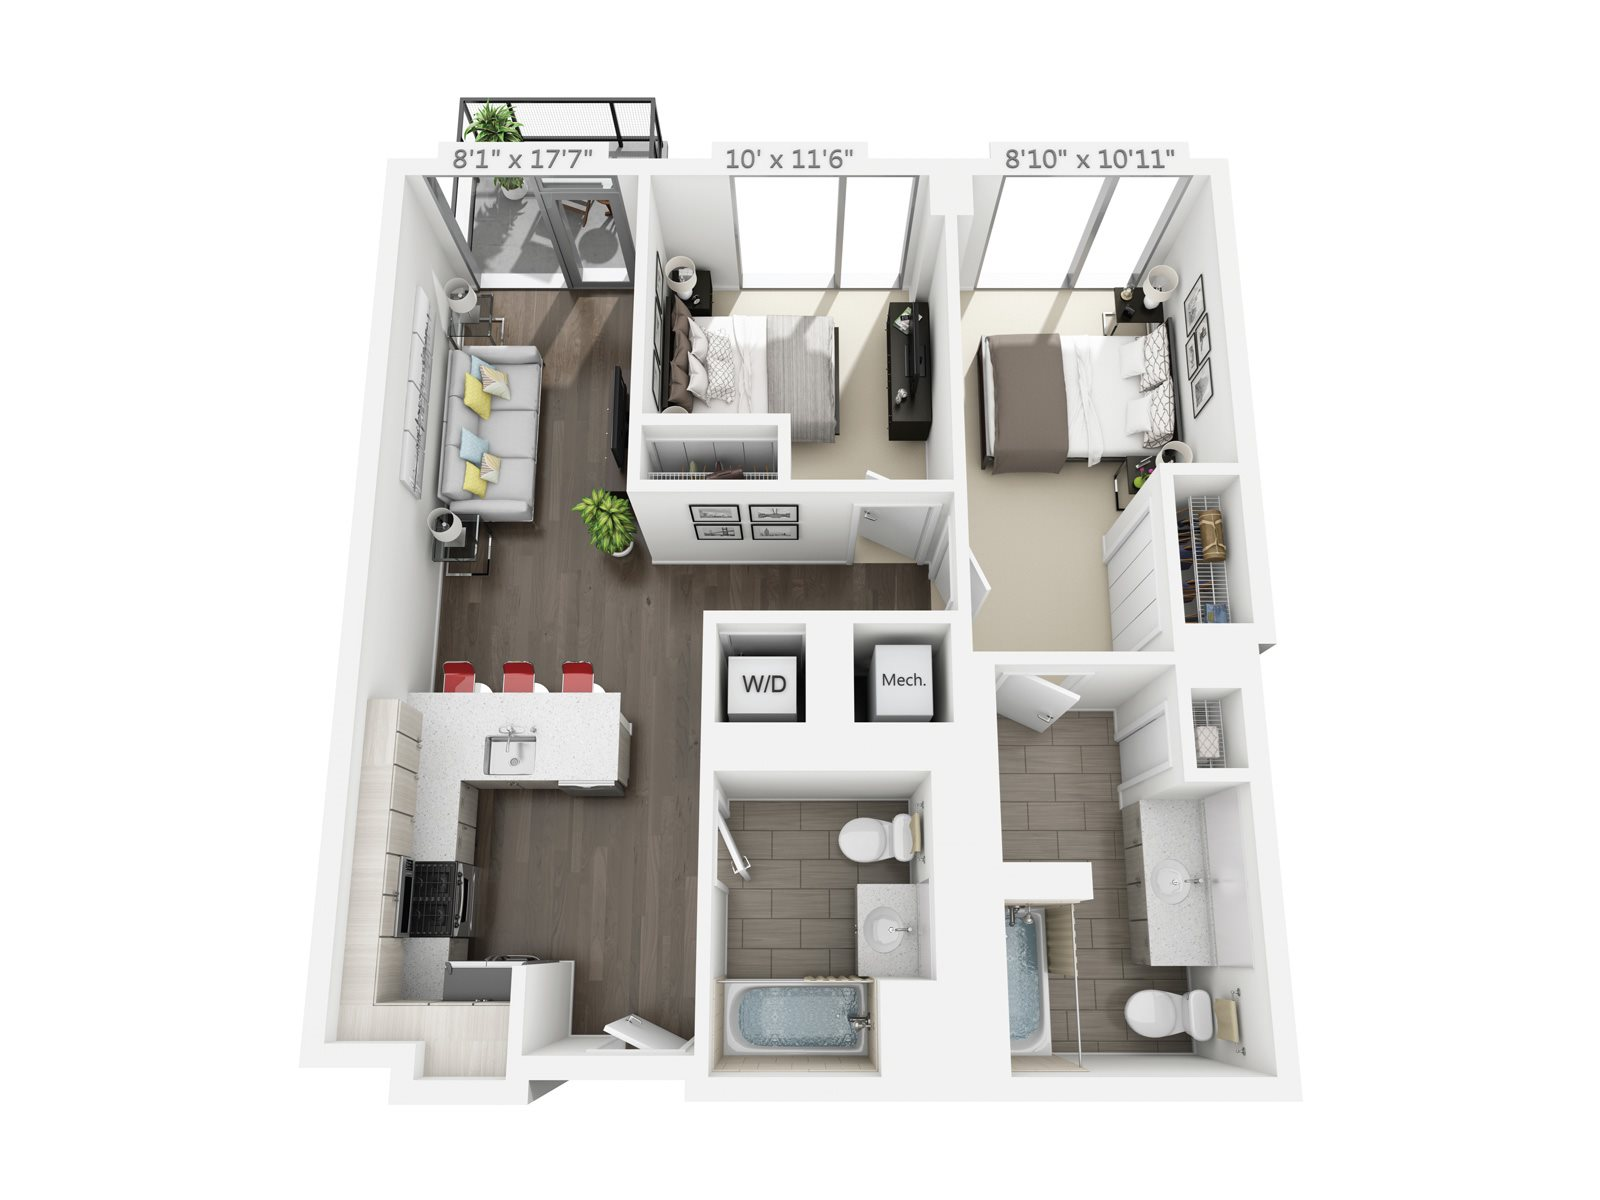 2 BEDROOM/ 2 BATH BALCONY C1 Floor Plan 7